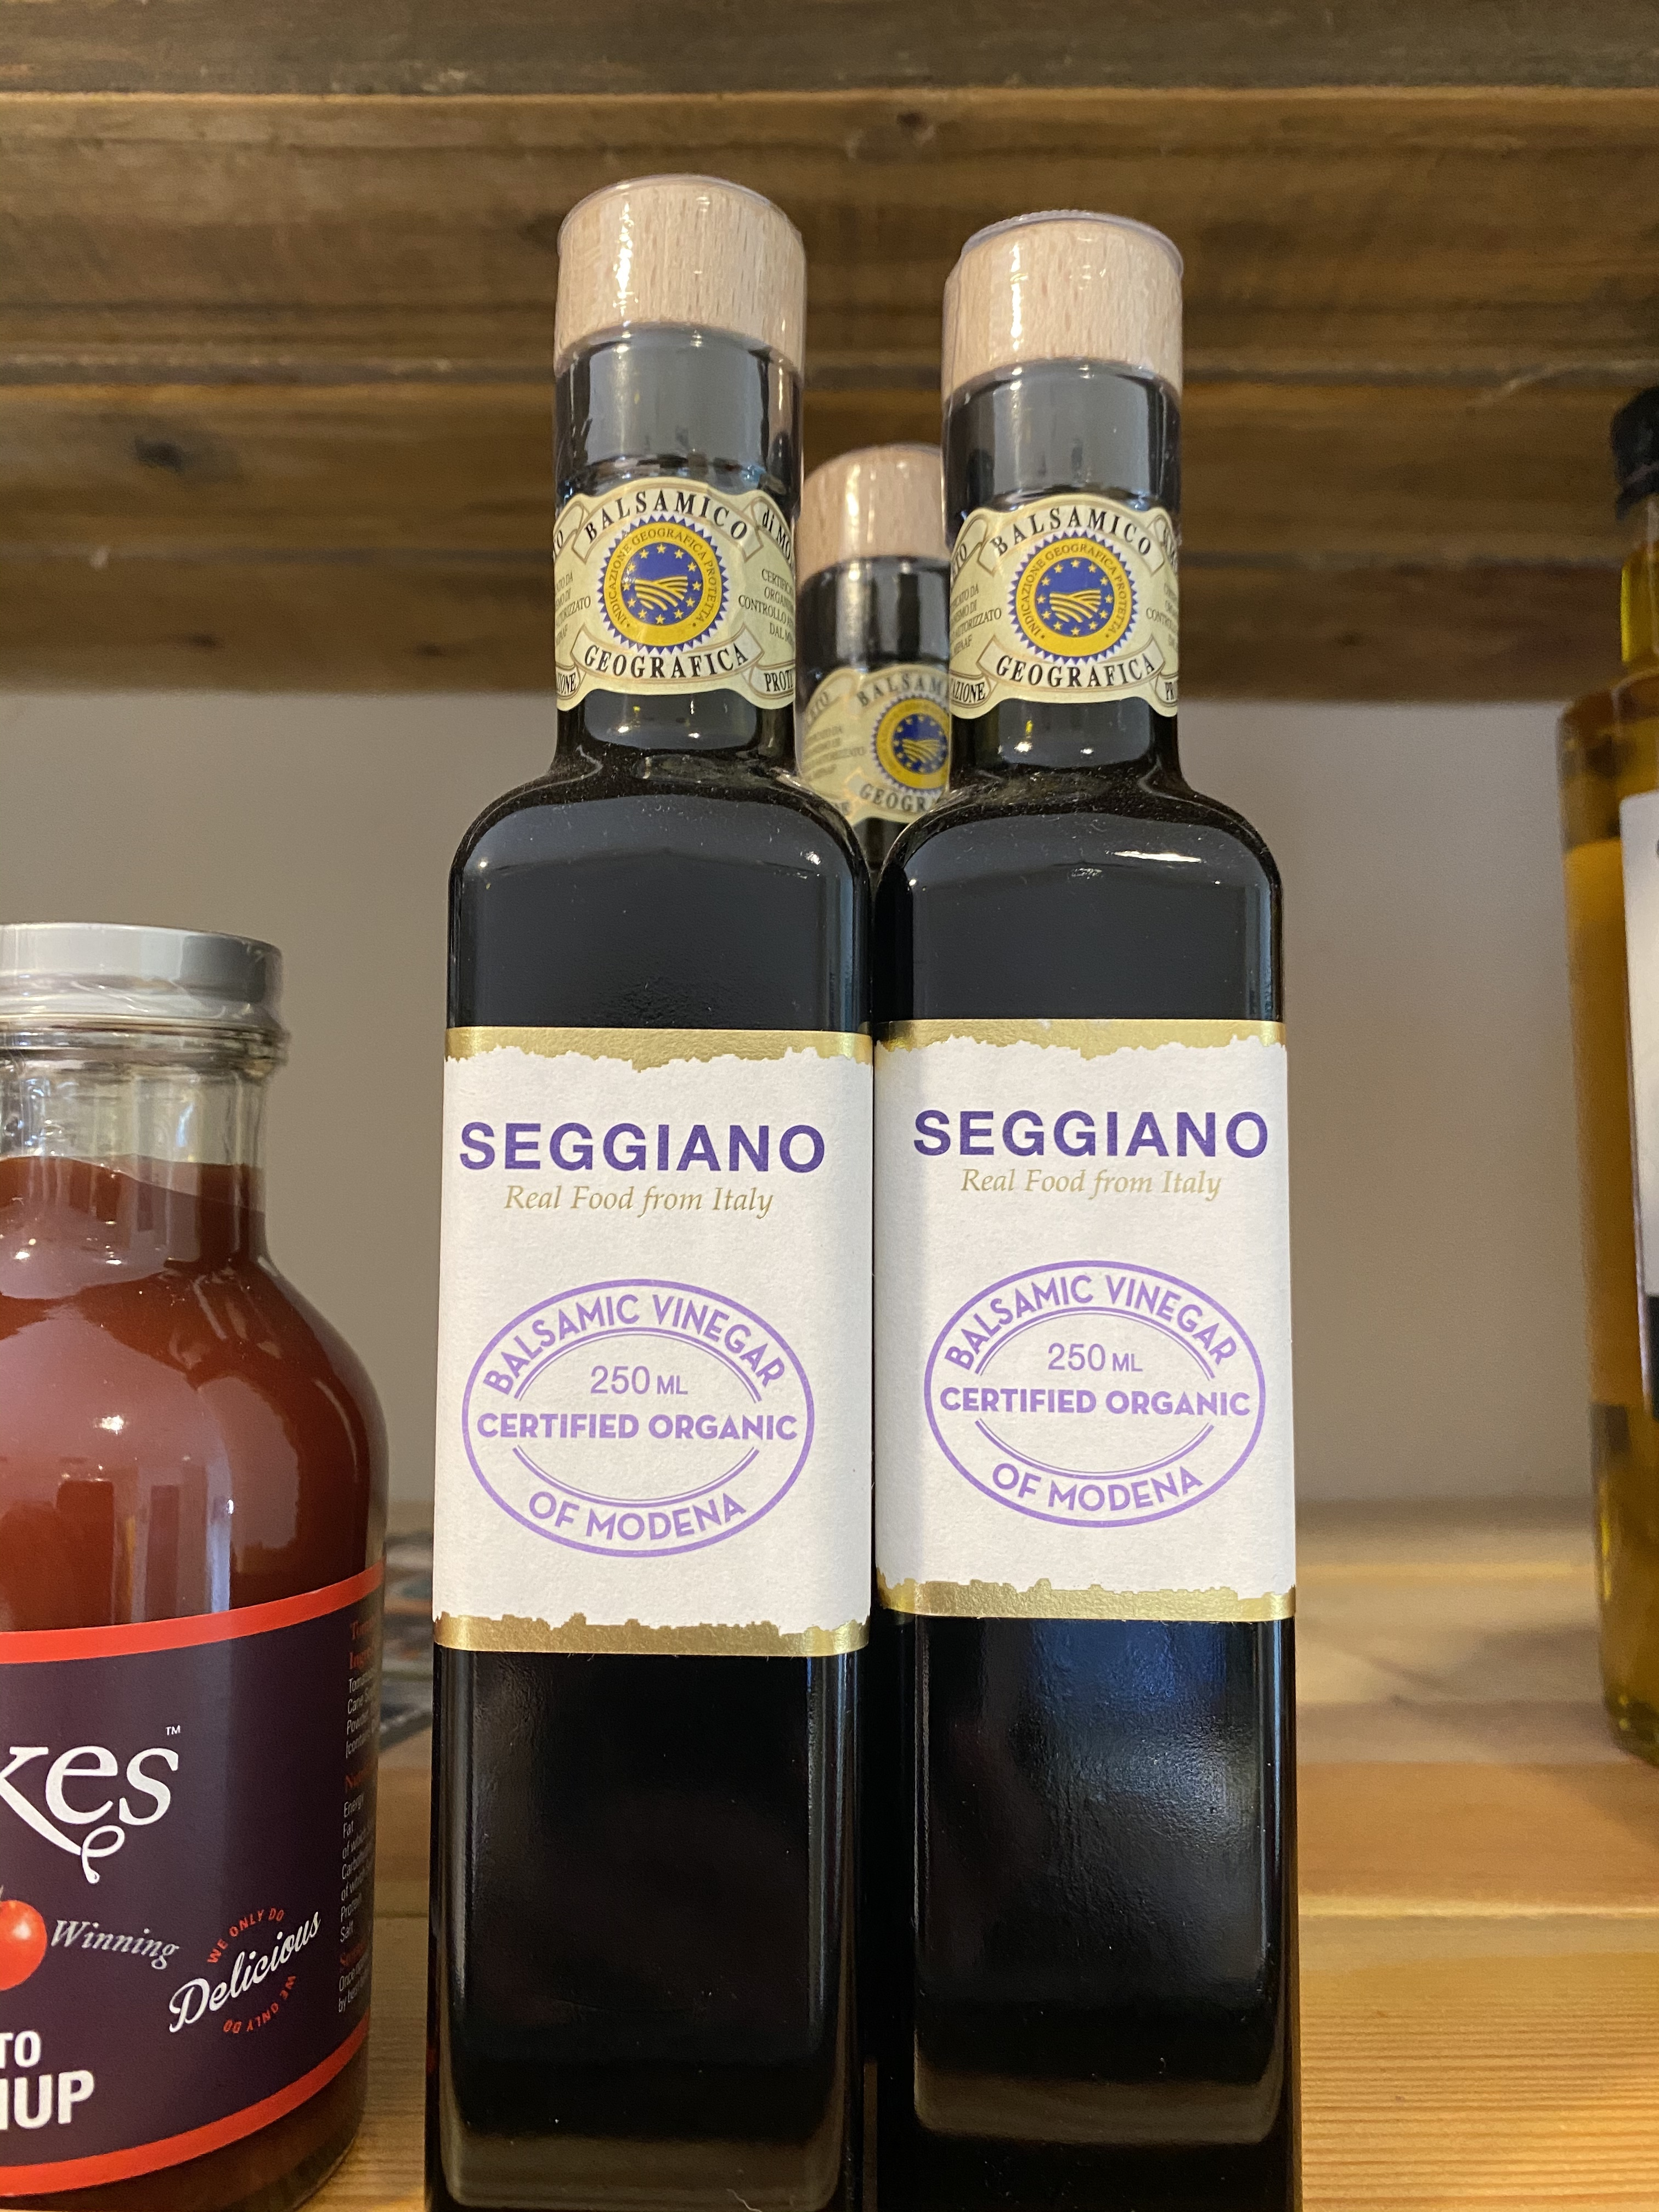 Seggiano Balsamic Vinegar